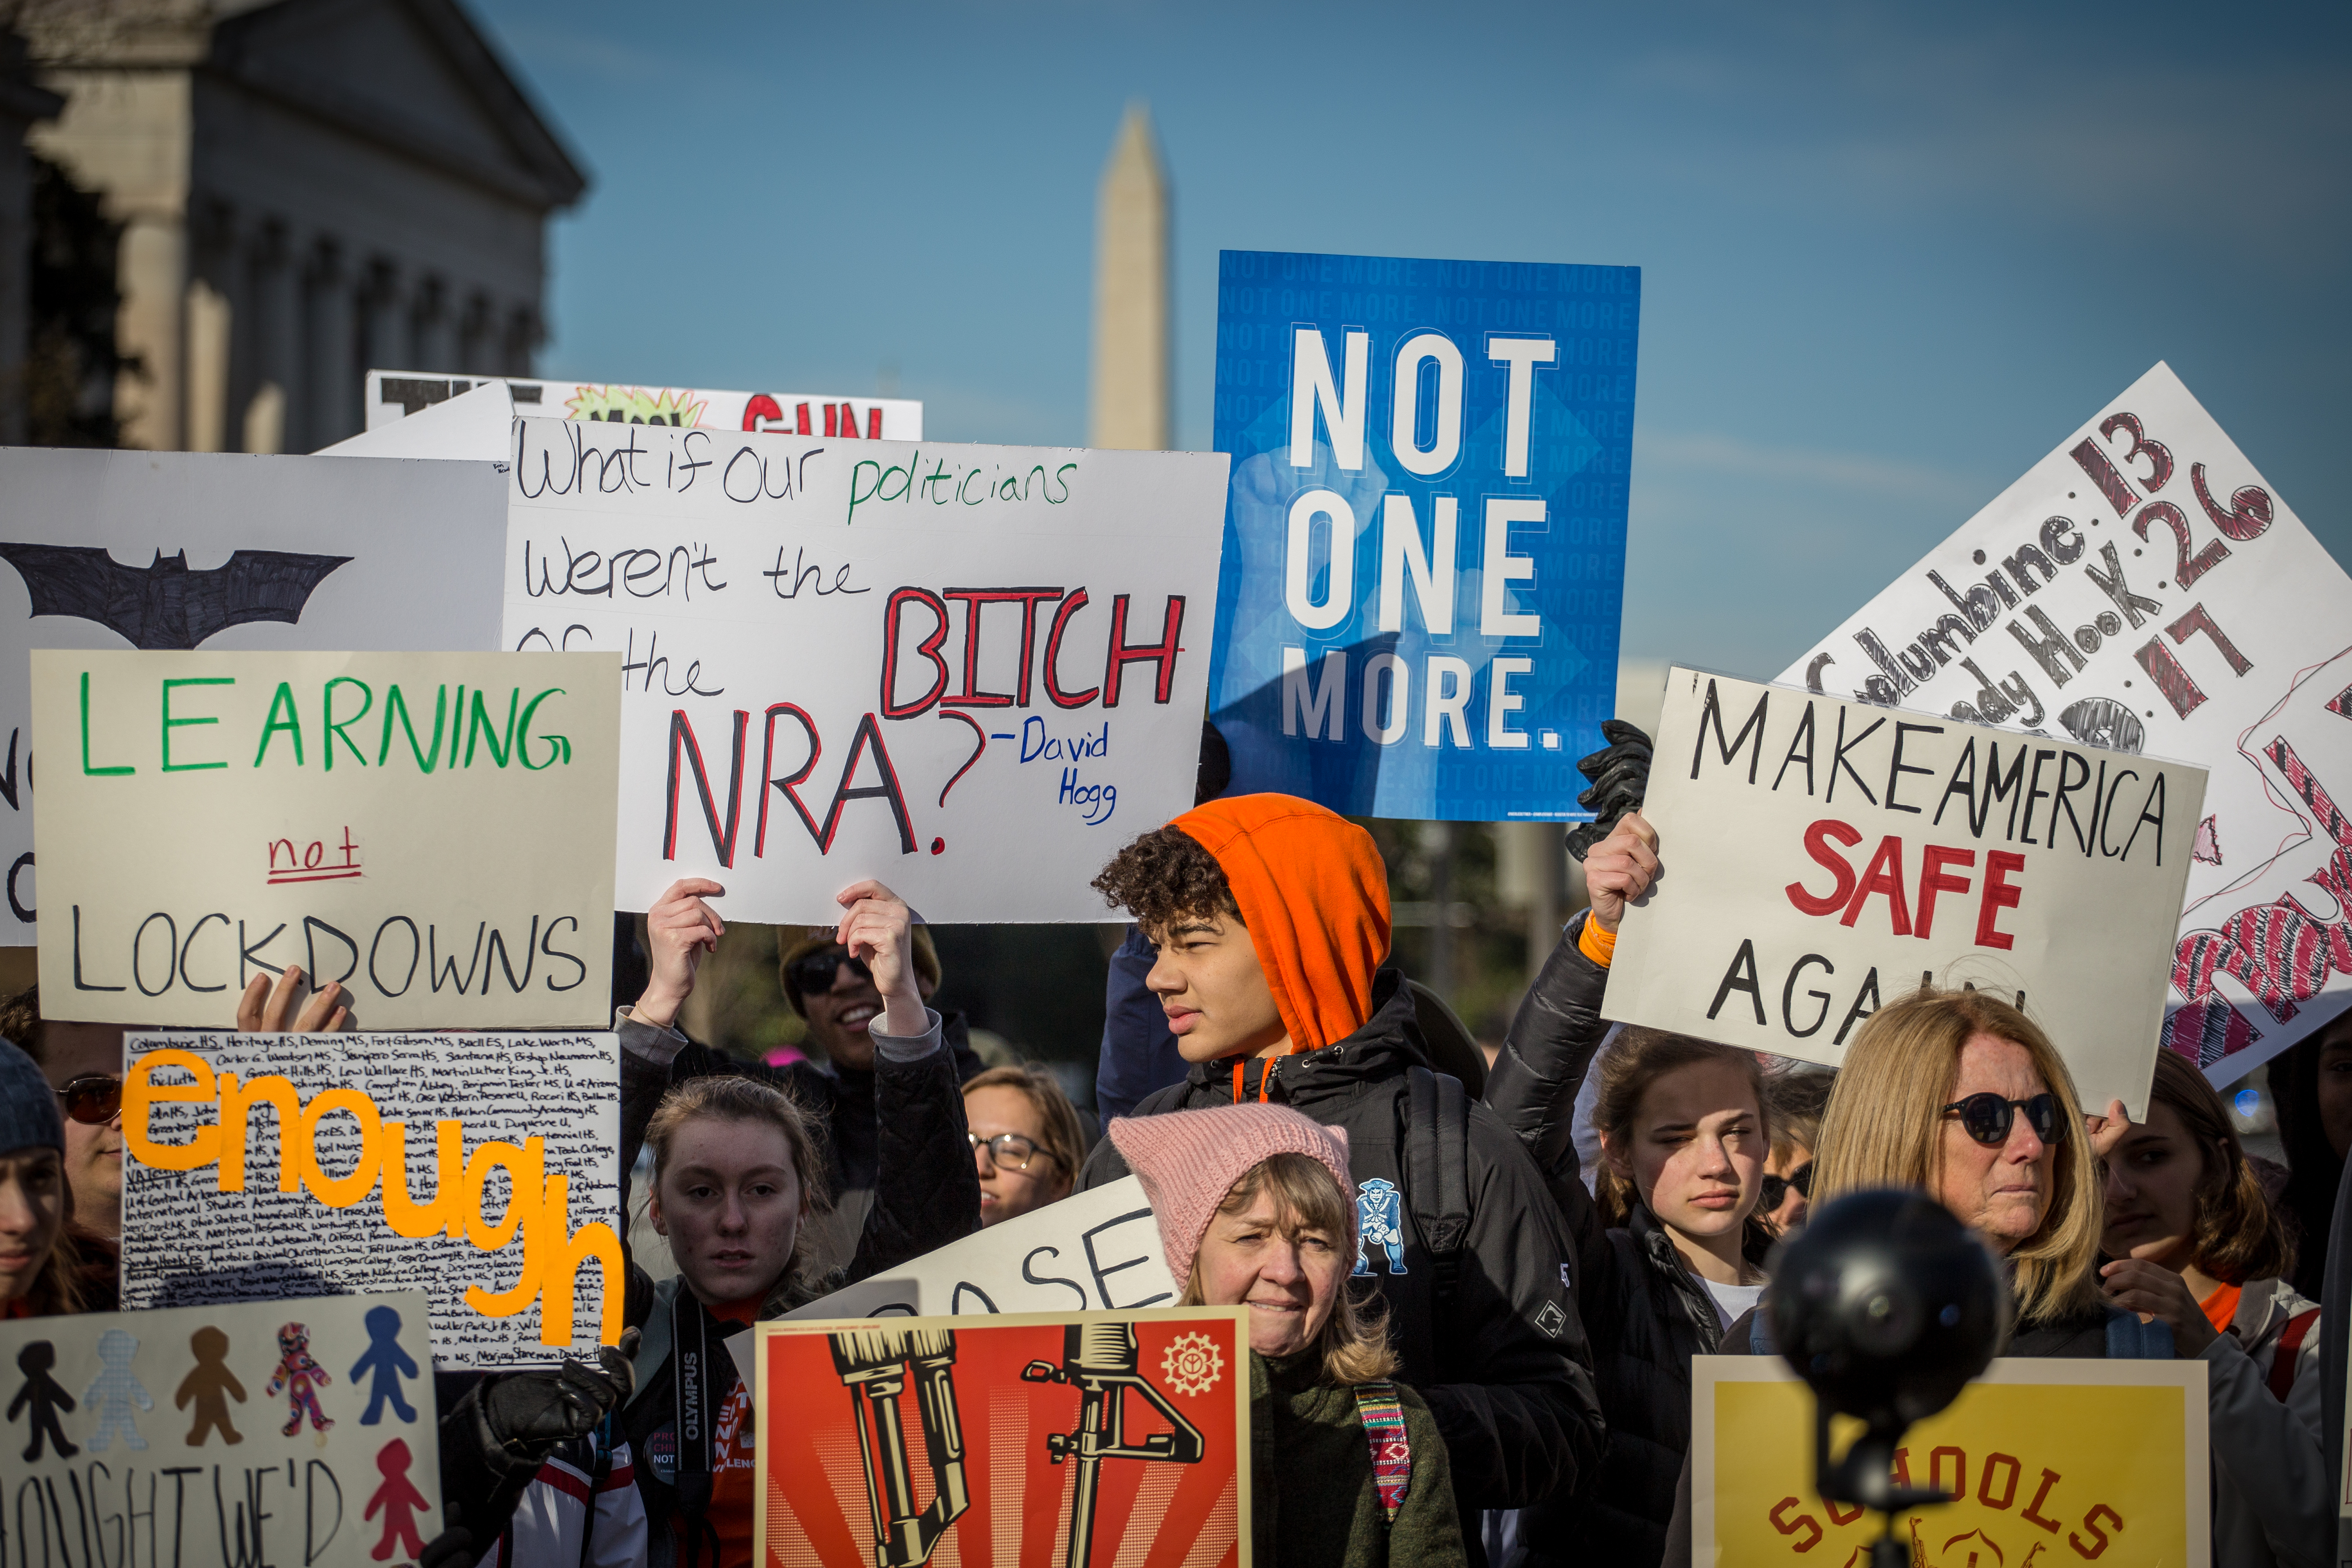 File:March for Our Lives (40353435264) jpg - Wikimedia Commons